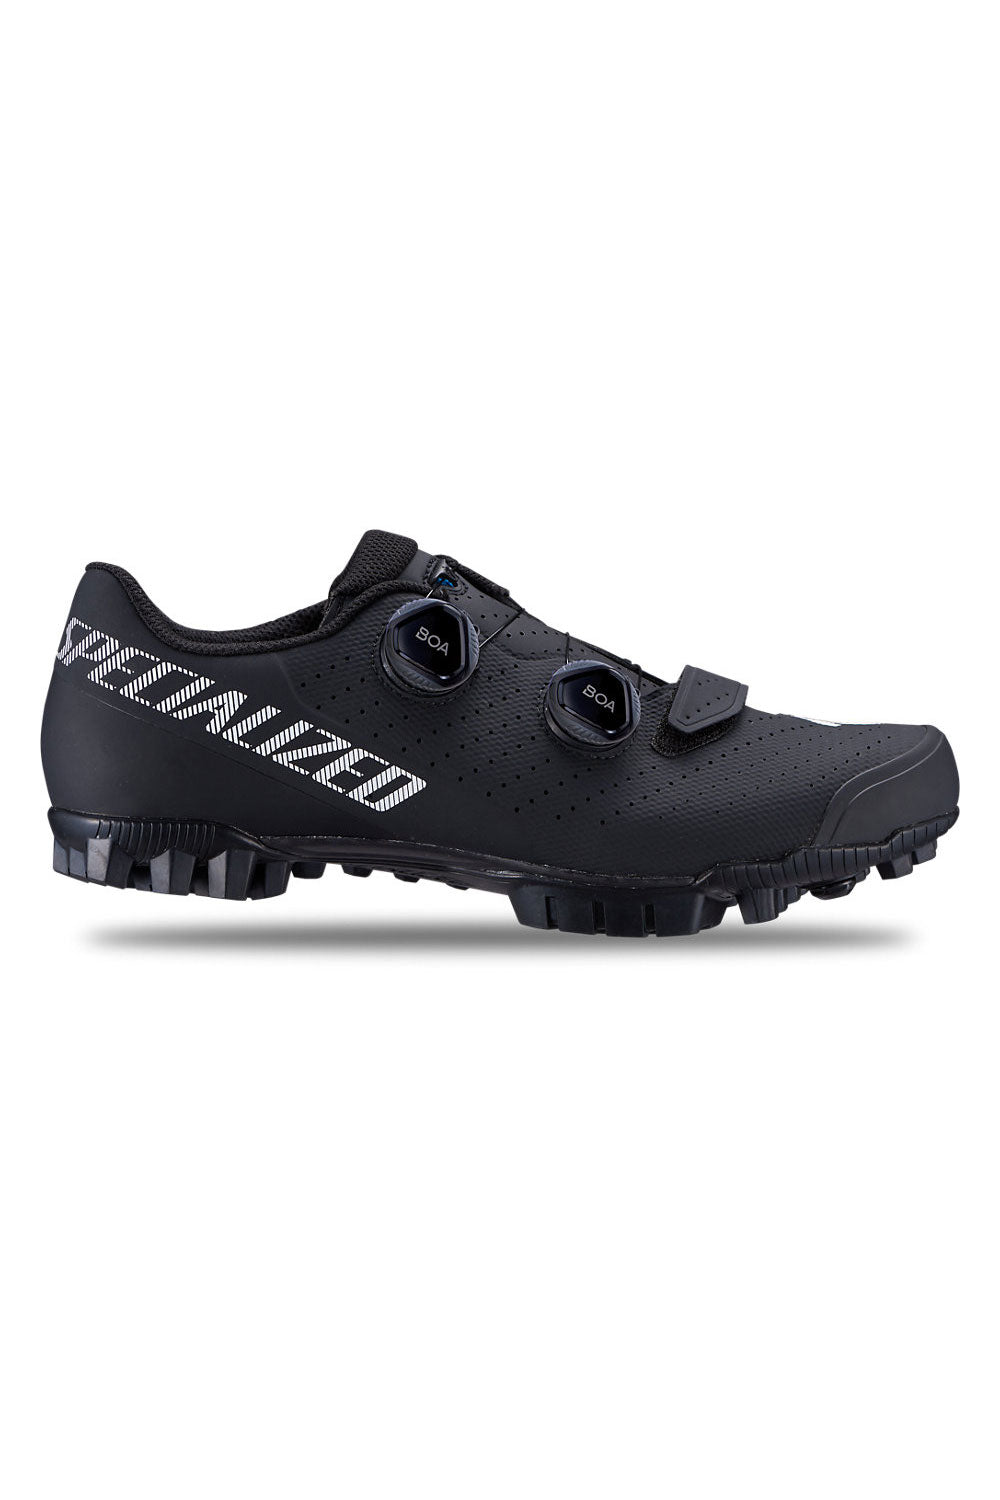 SPECIALIZED RECON 3.0 BIKE SHOE